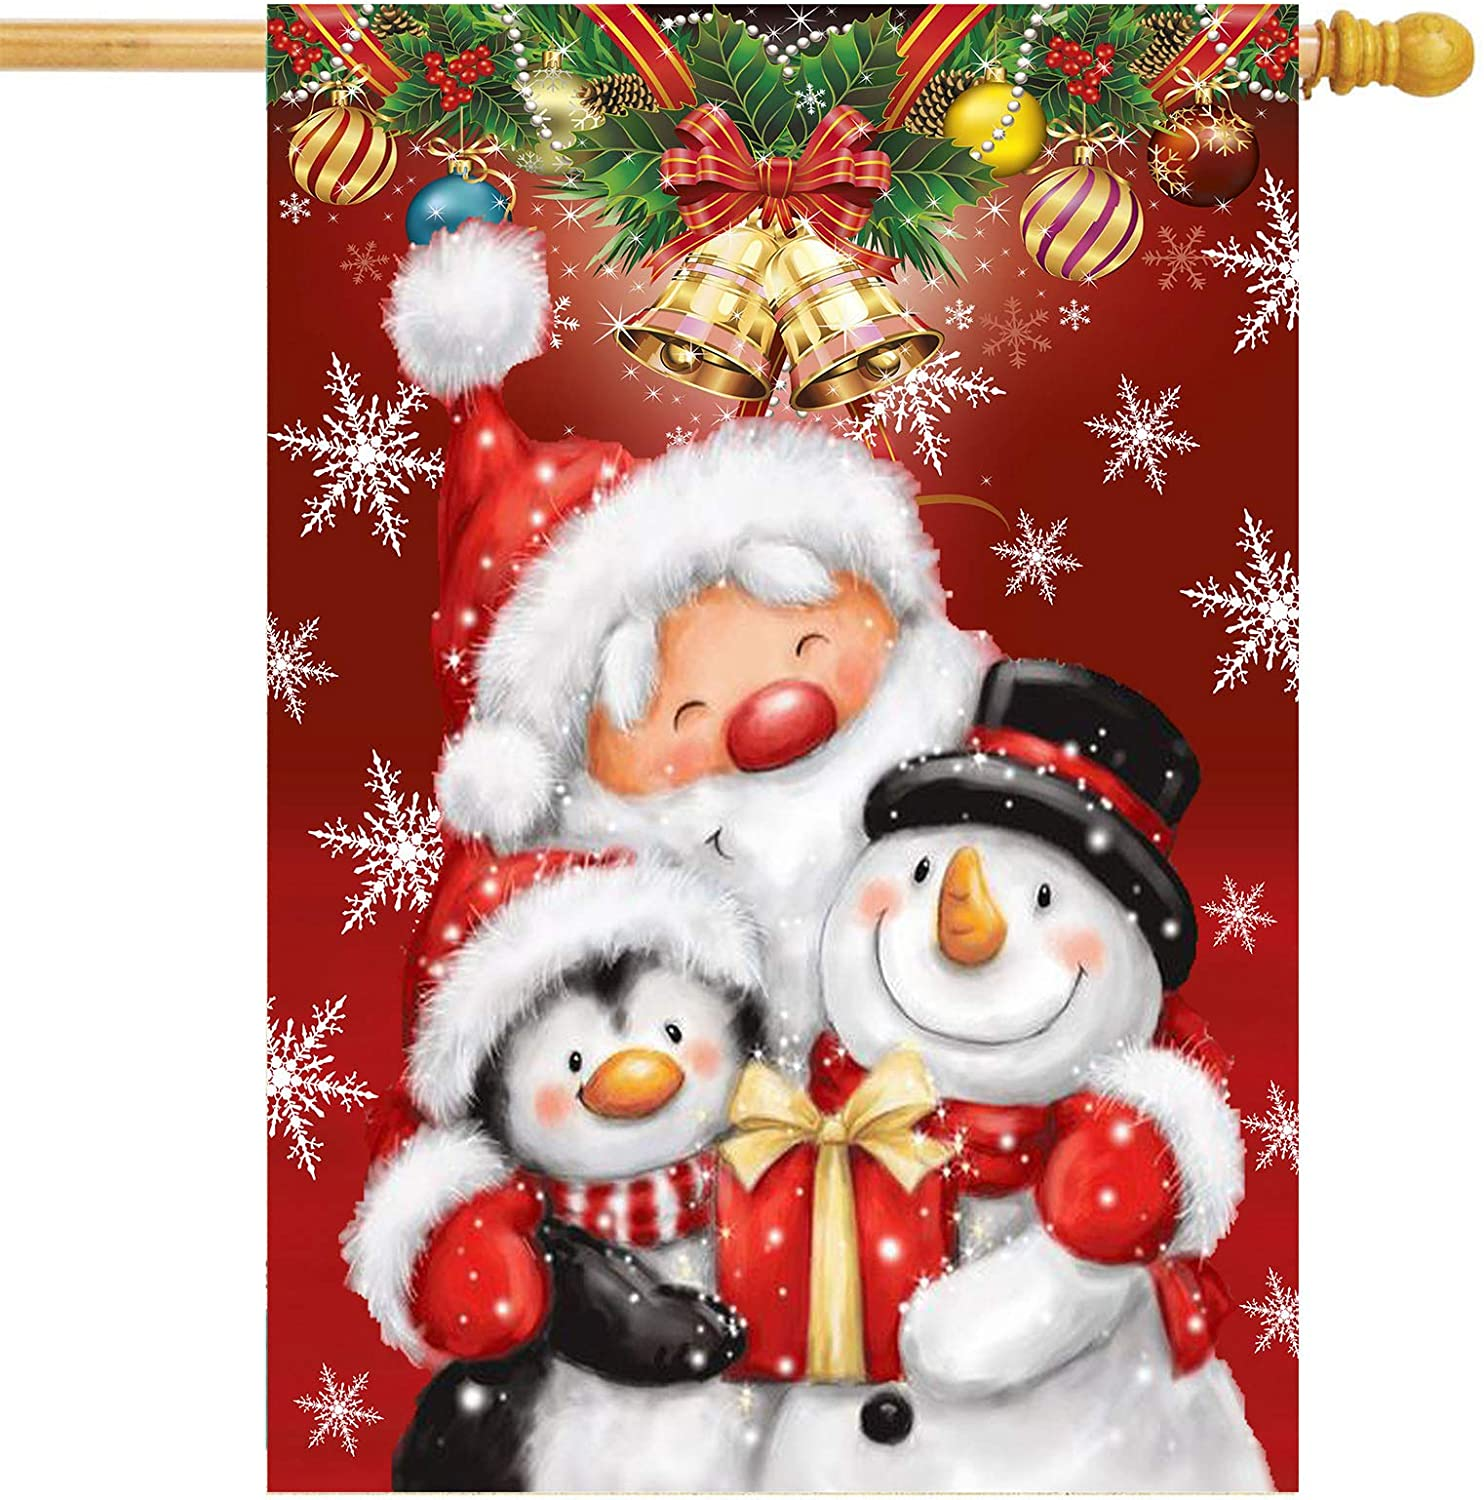 Christmas Santa Claus Snowman Garden Flag 28x40 Double Sided Penguin Snowflake Bell House Yard Flags Welcome Winter Outdoor Indoor Banner for Party Home Merry Christmas Decorations